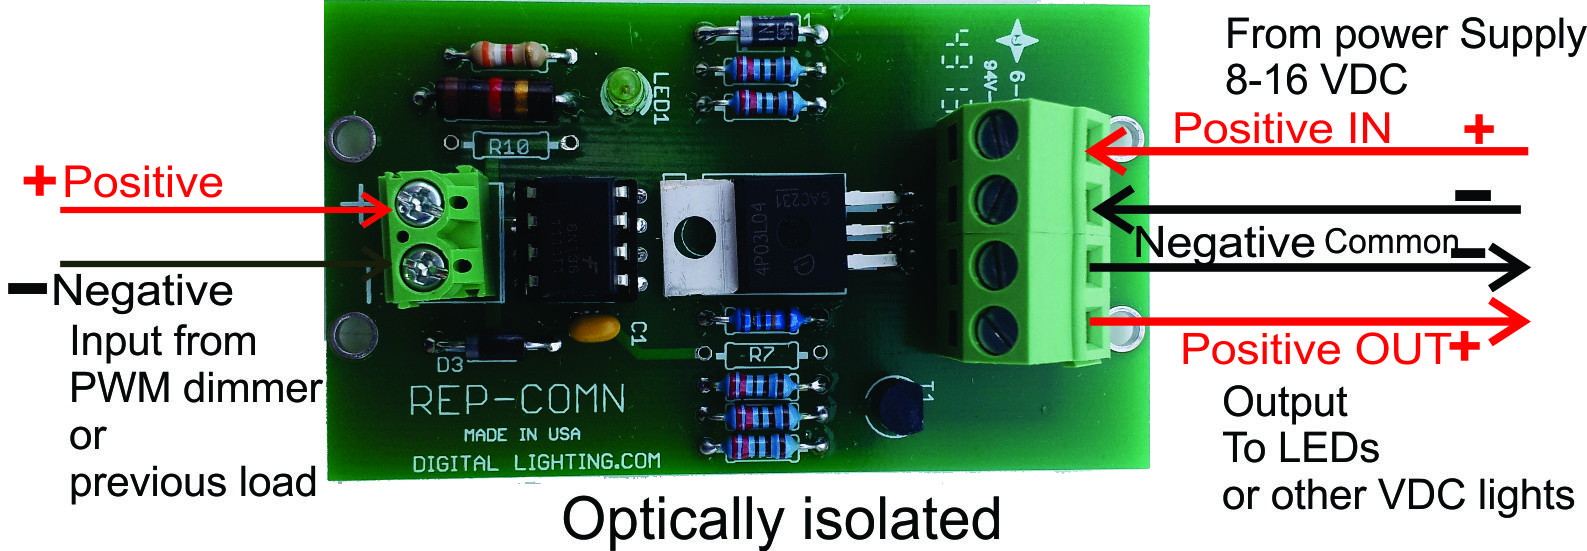 Led Dimmers Common Negative